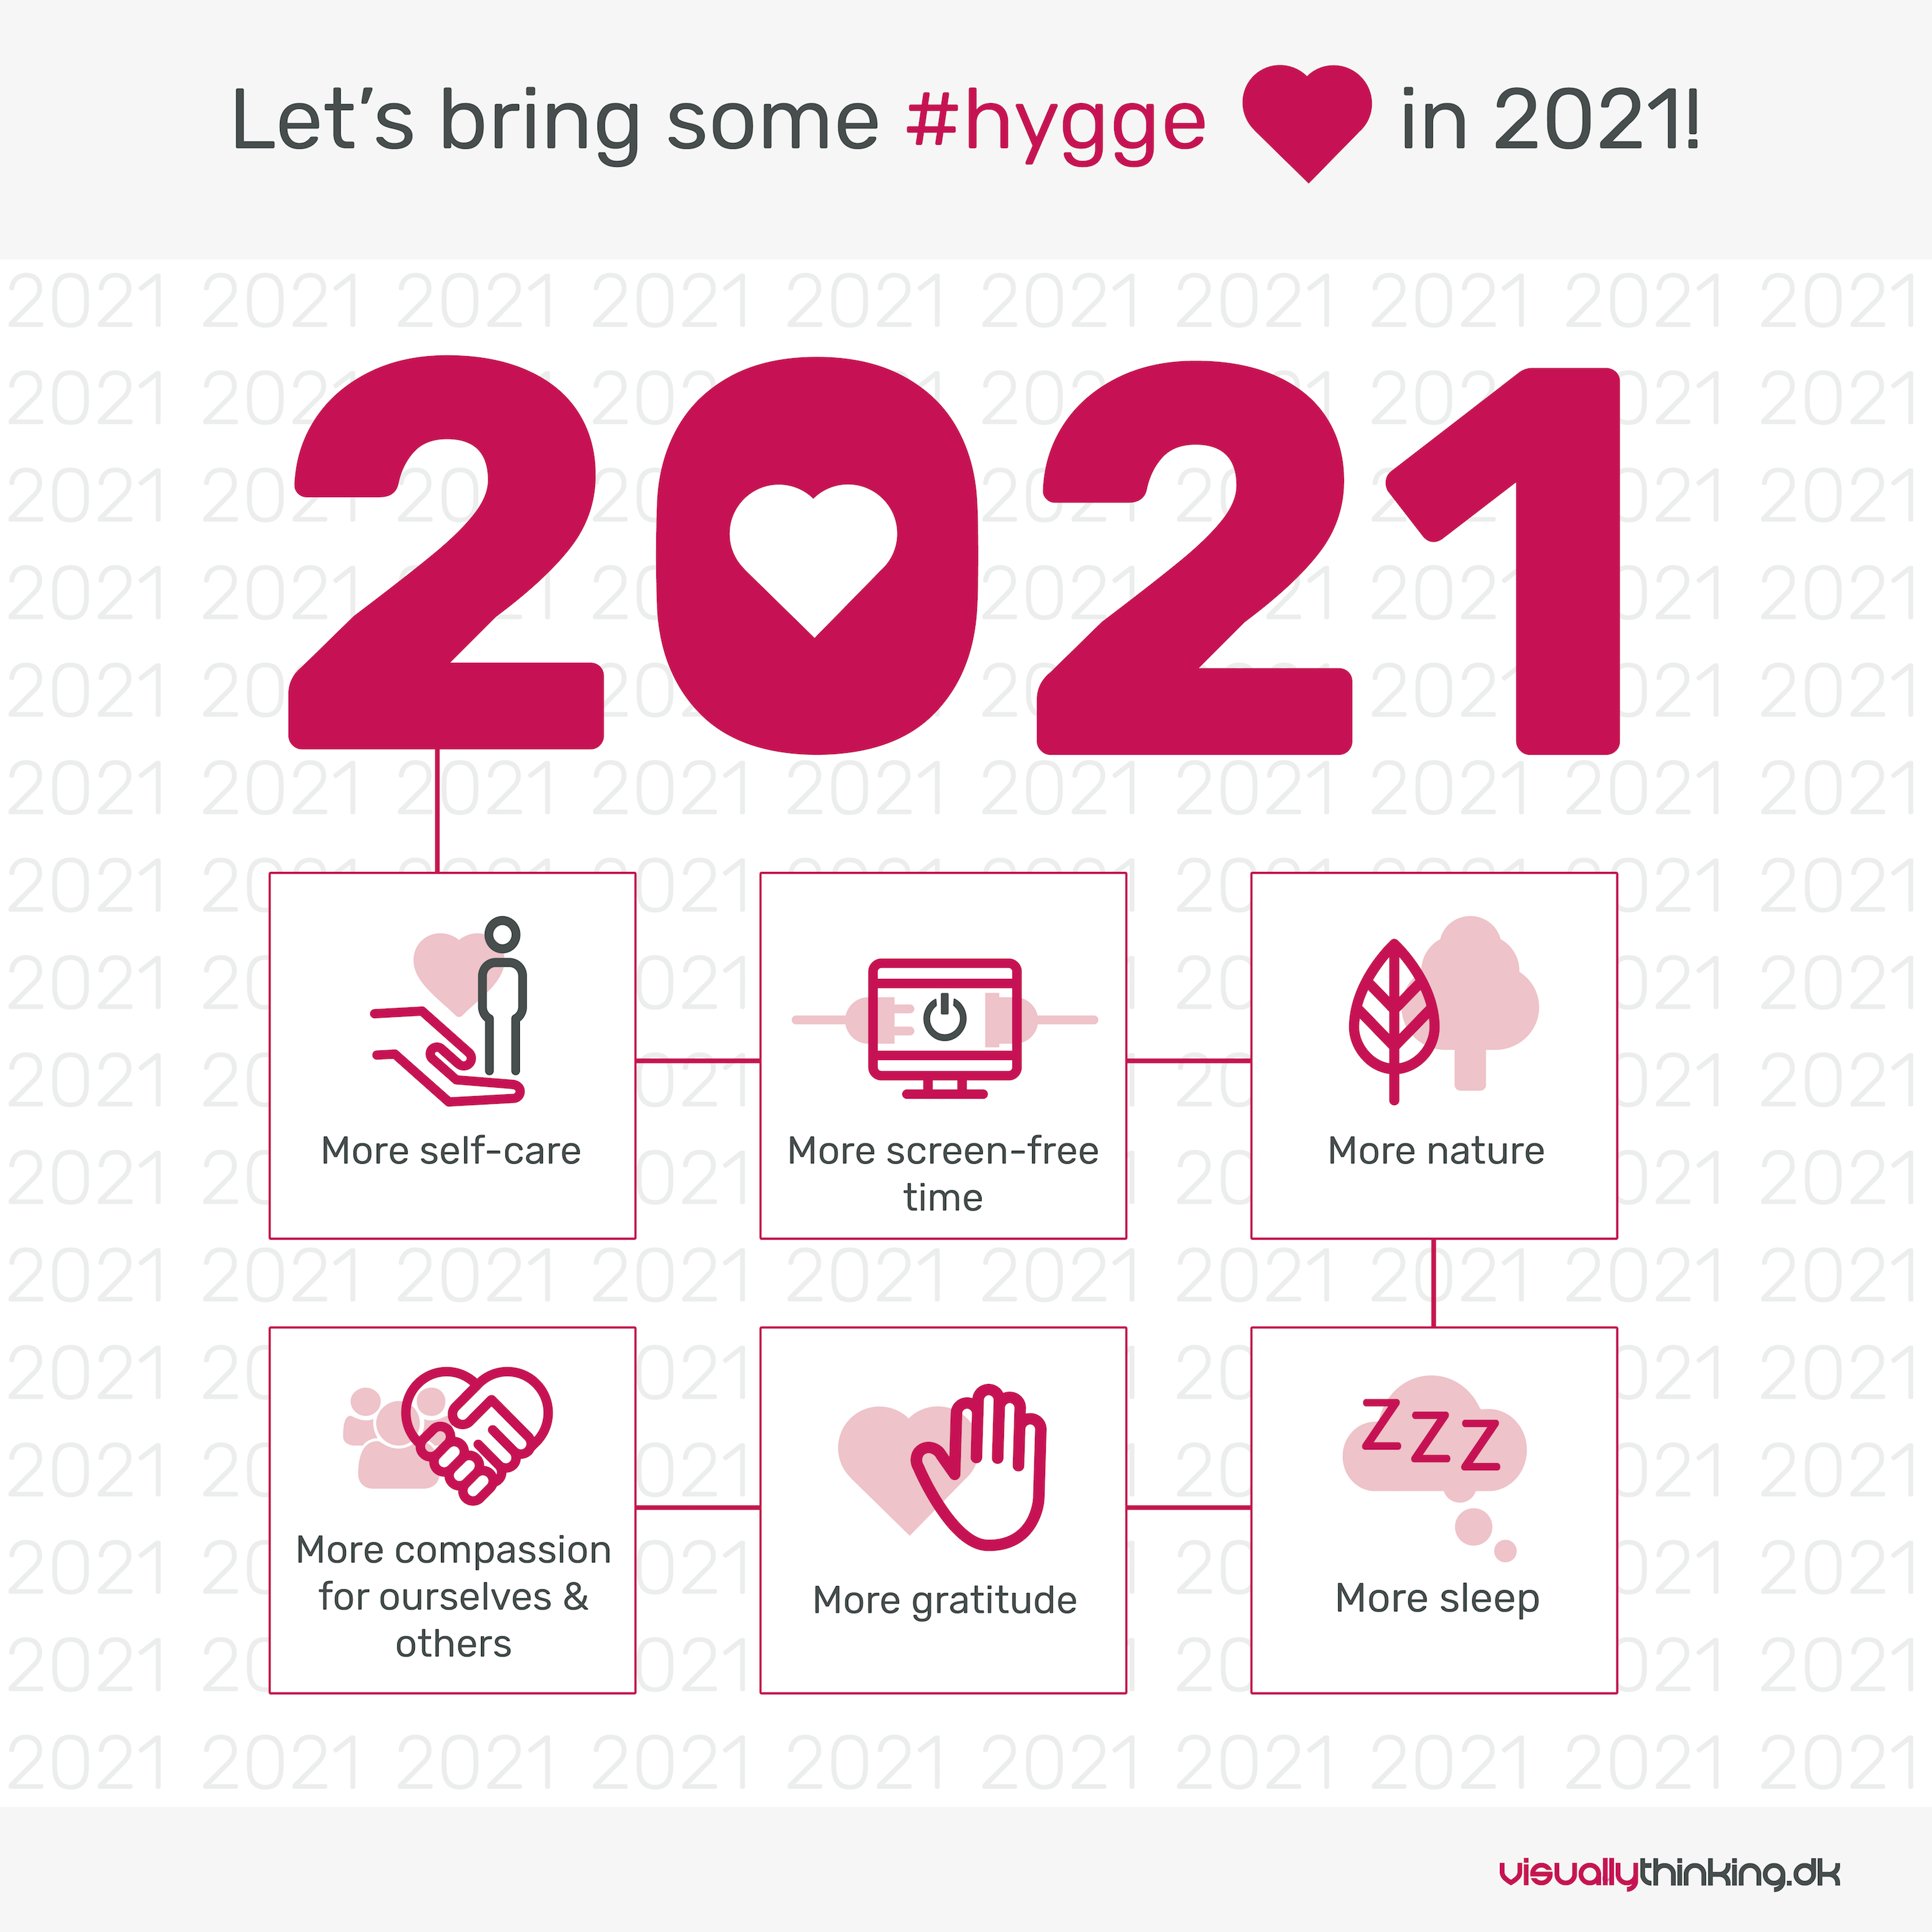 Let's bring some Hygge in 2021. Visually Thinking DK infographic on Hygge.